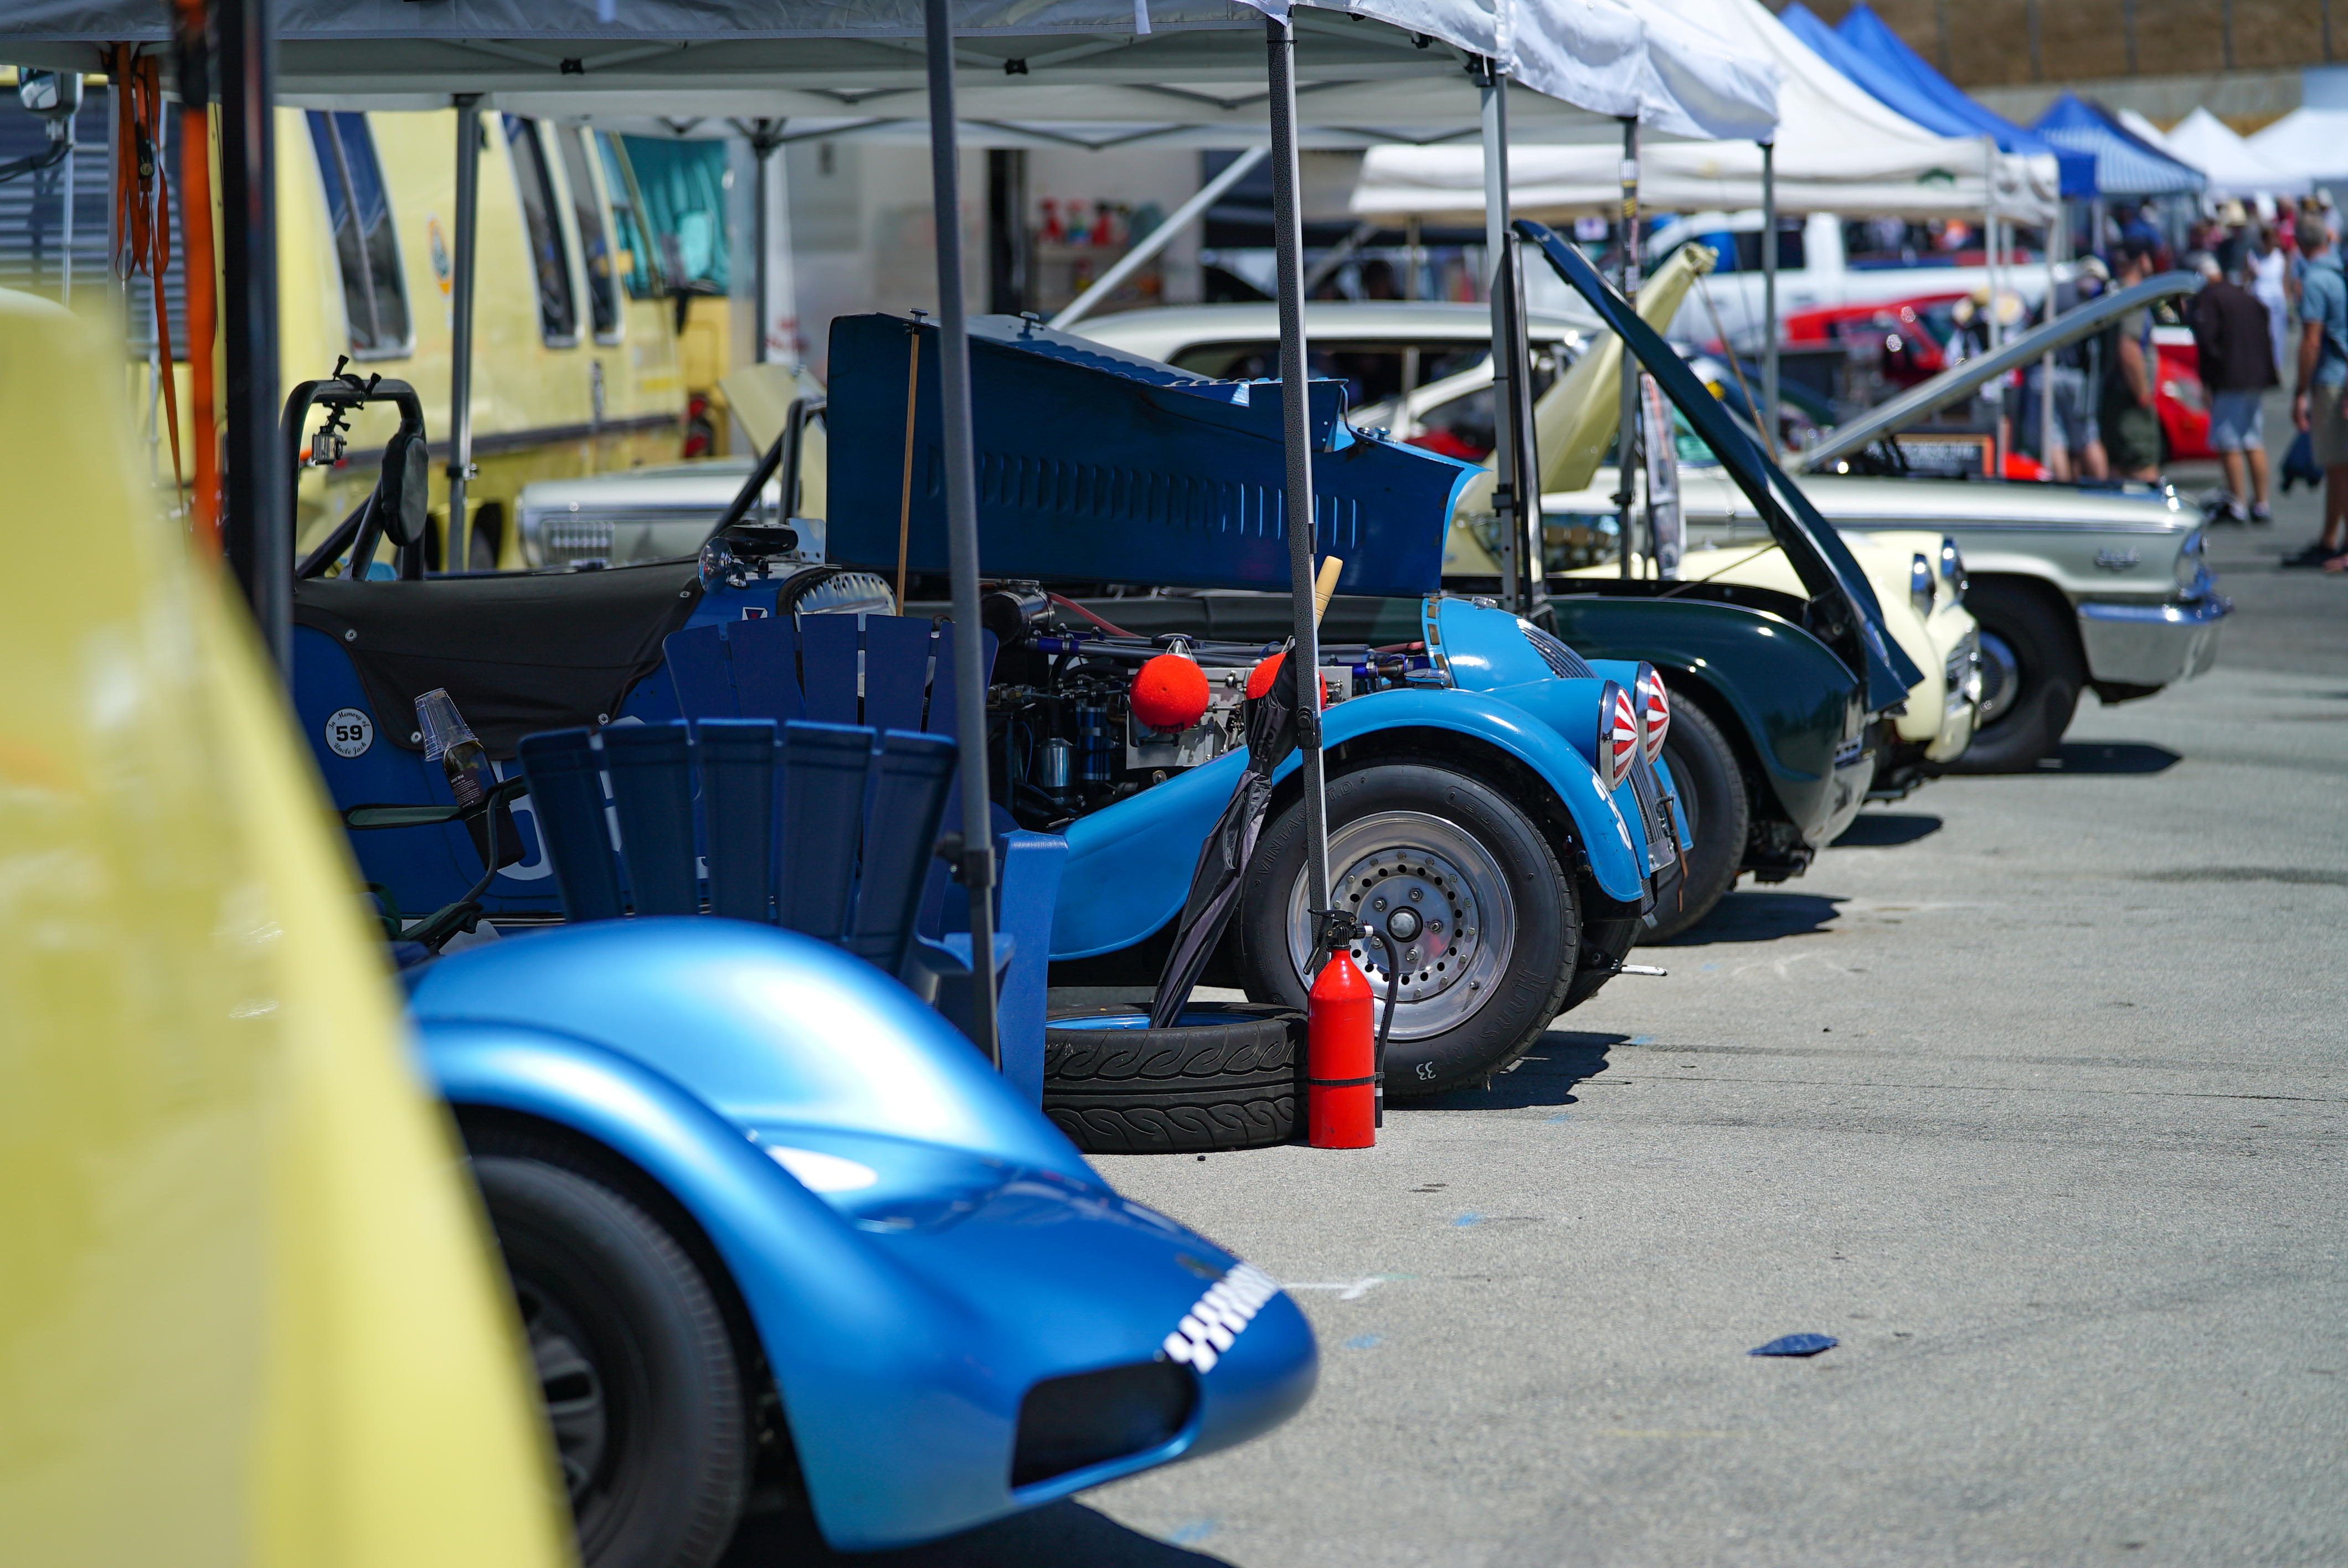 Enthusiast owned cars pits at Laguna Seca